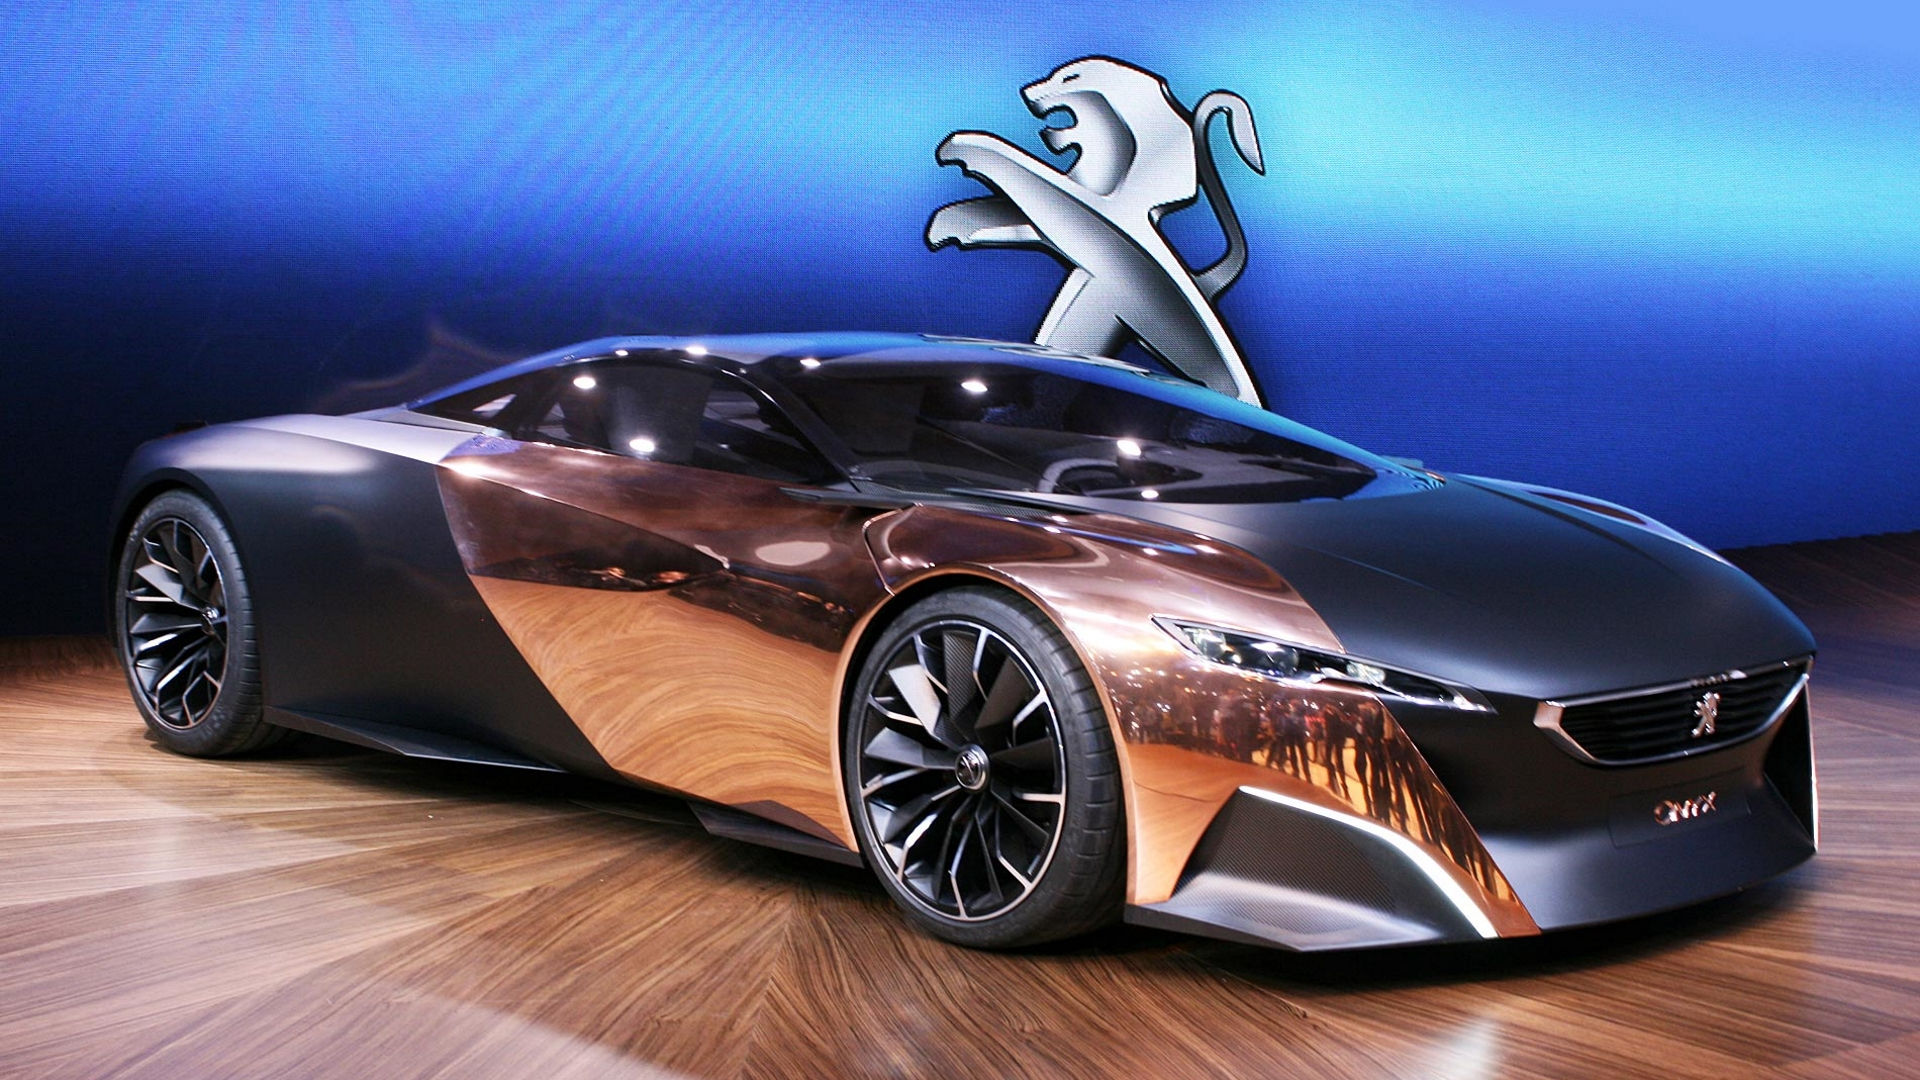 1 Peugeot Onyx Hd Wallpapers Background Images